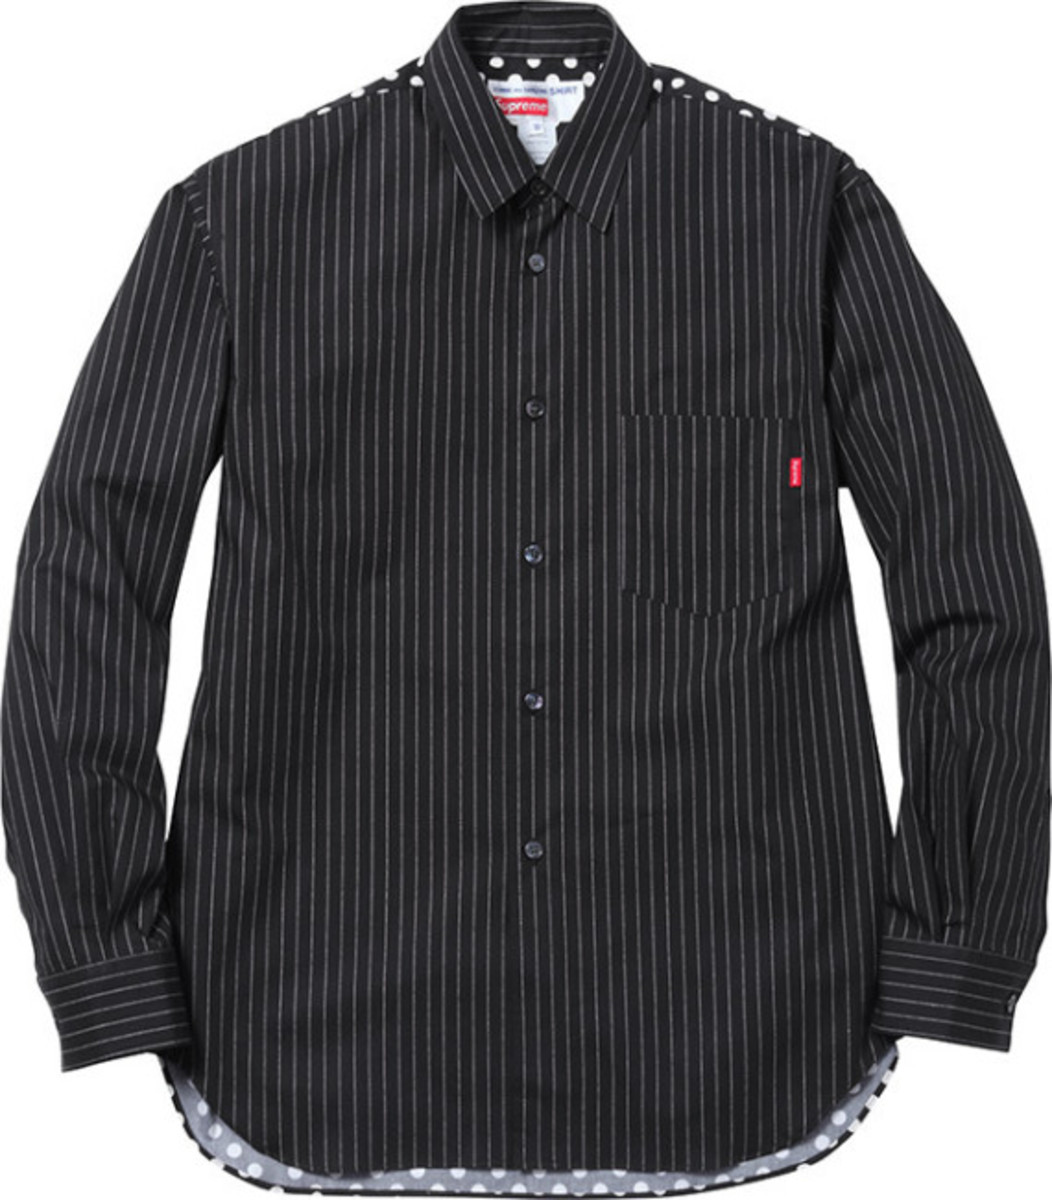 supreme-x-comme-des-garcon-shirt-2014-capsule-collection-harold-hunter-jason-dill-11